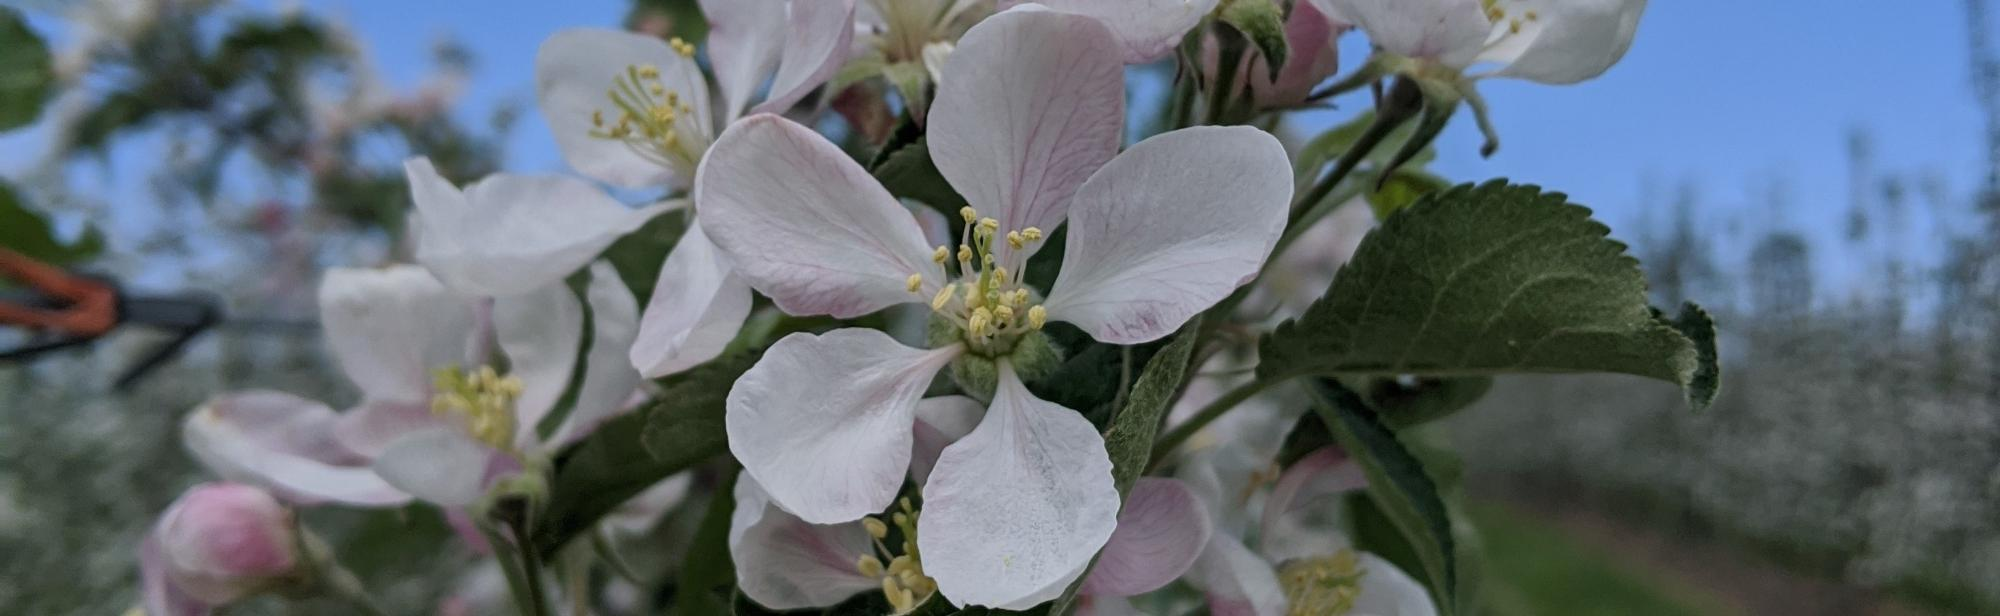 Image of apple blossoms